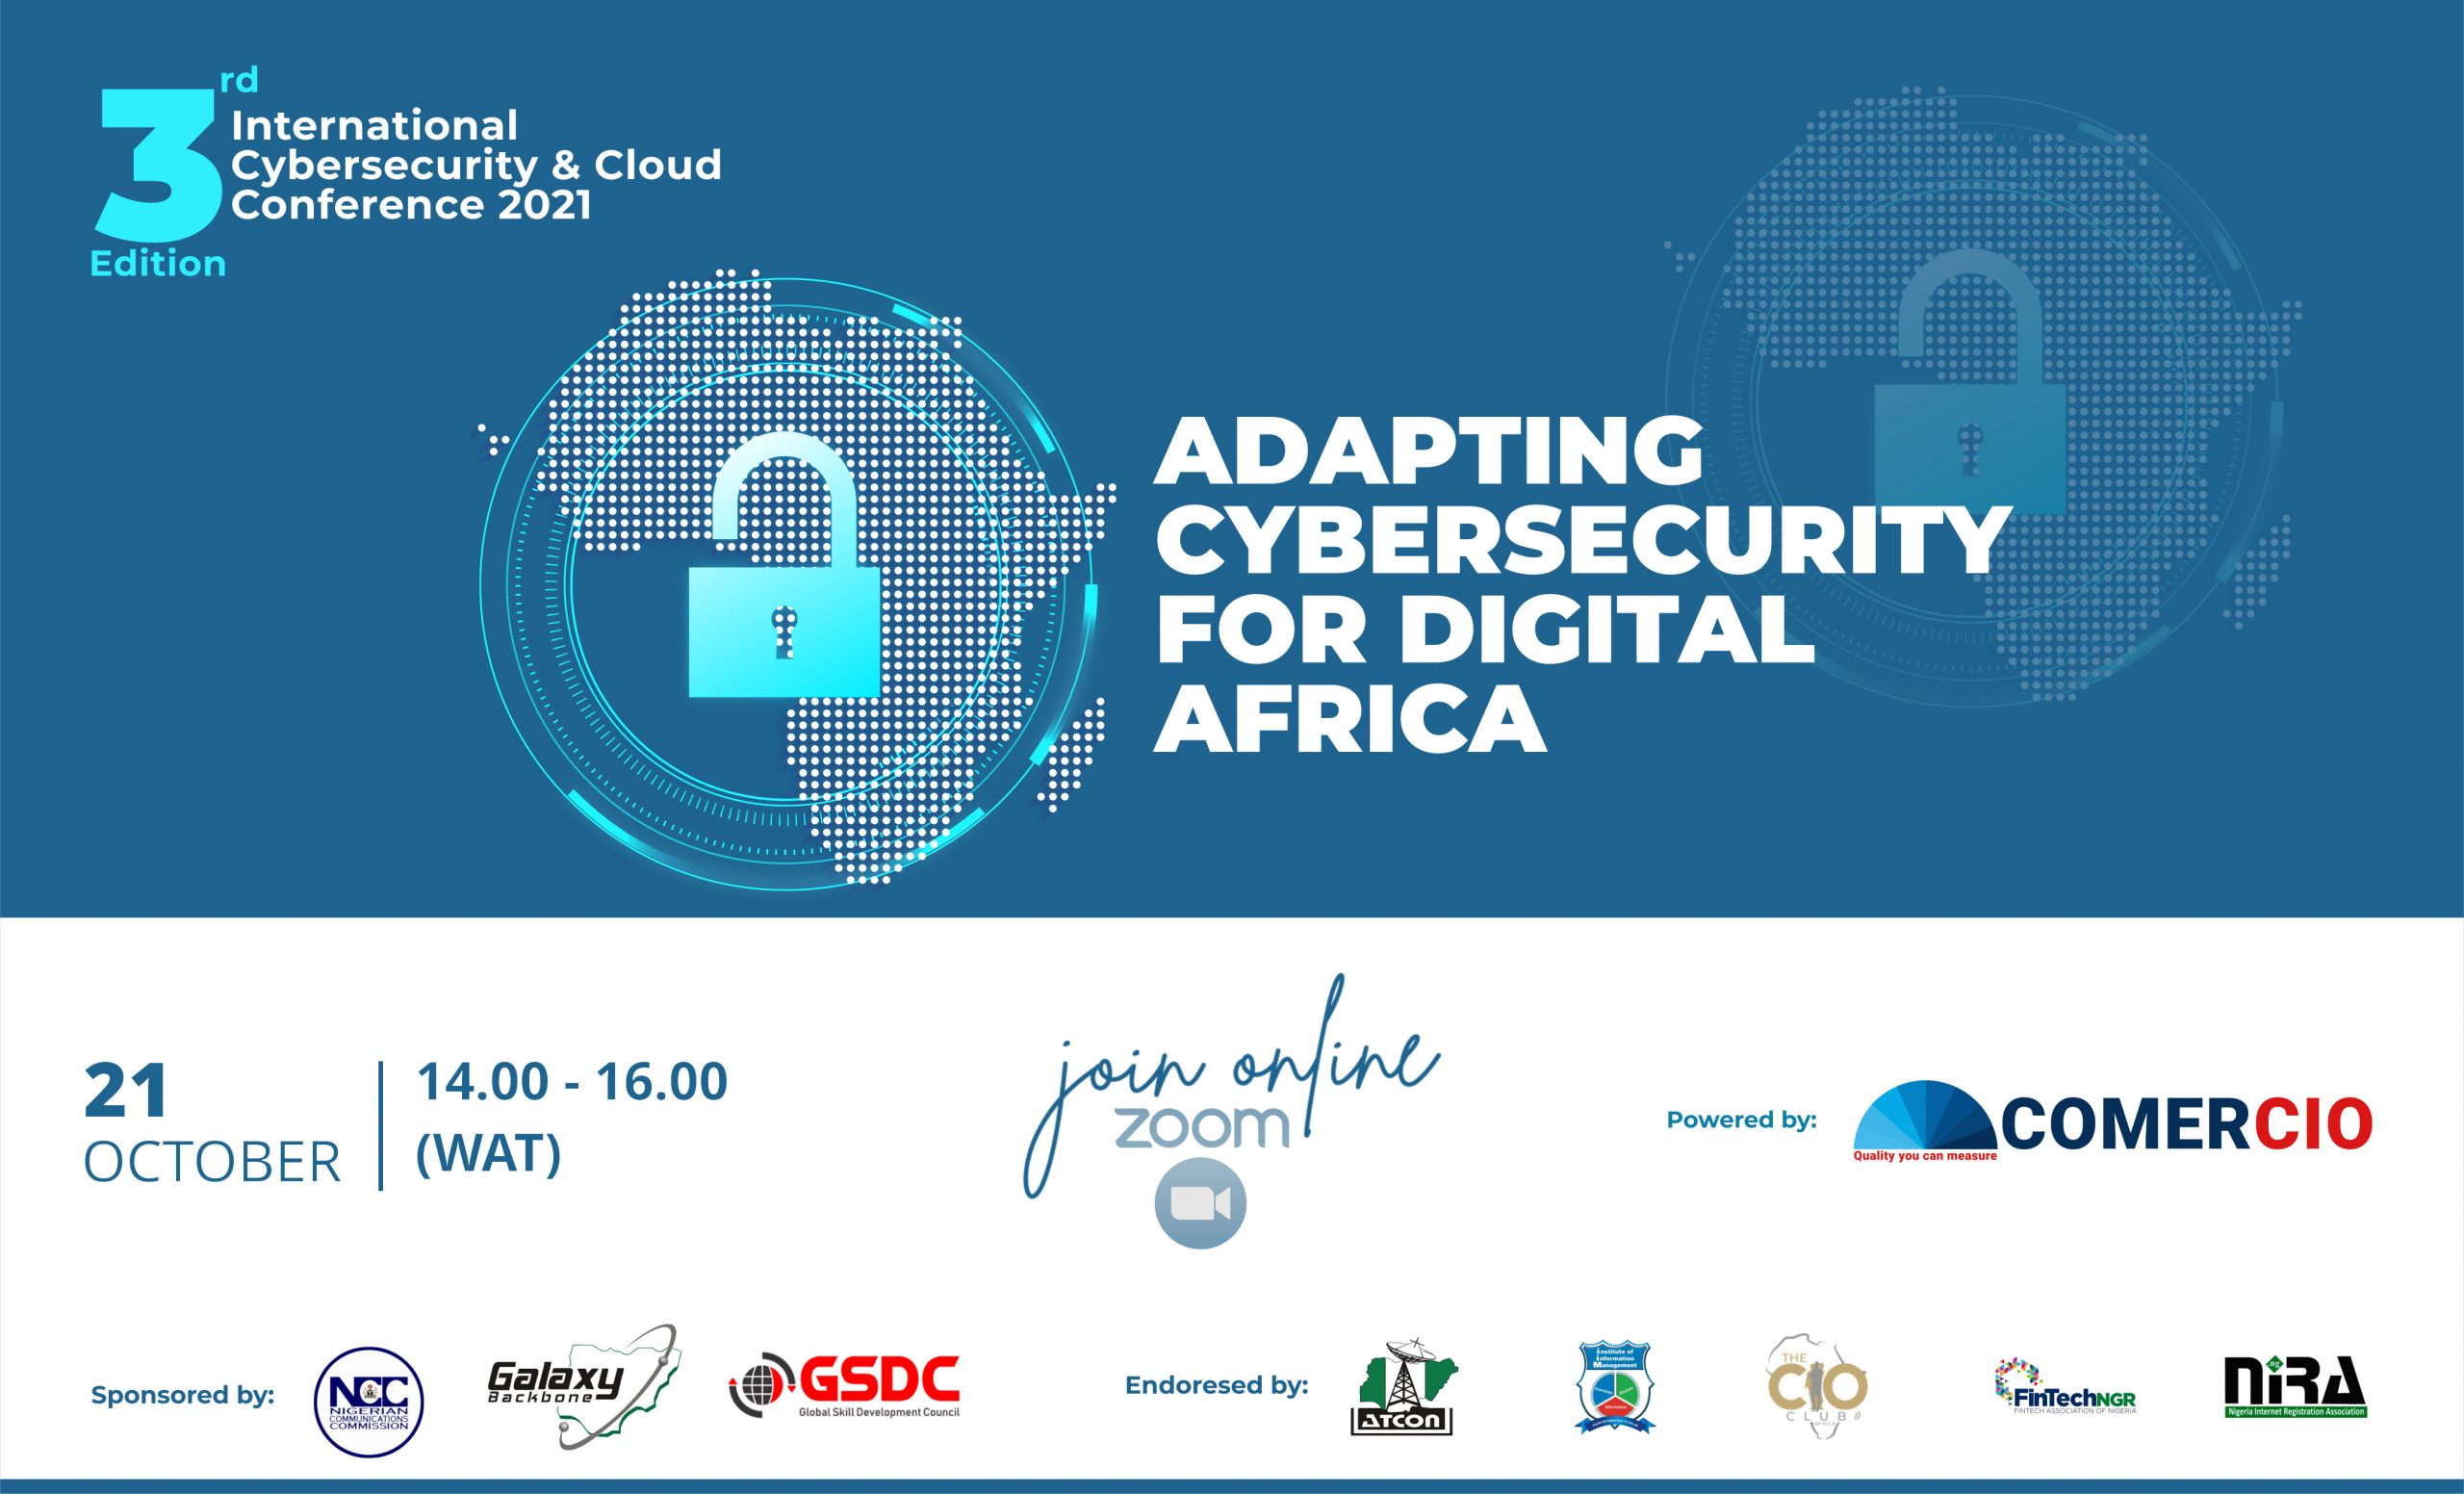 International Cybersecurity and Cloud Conference